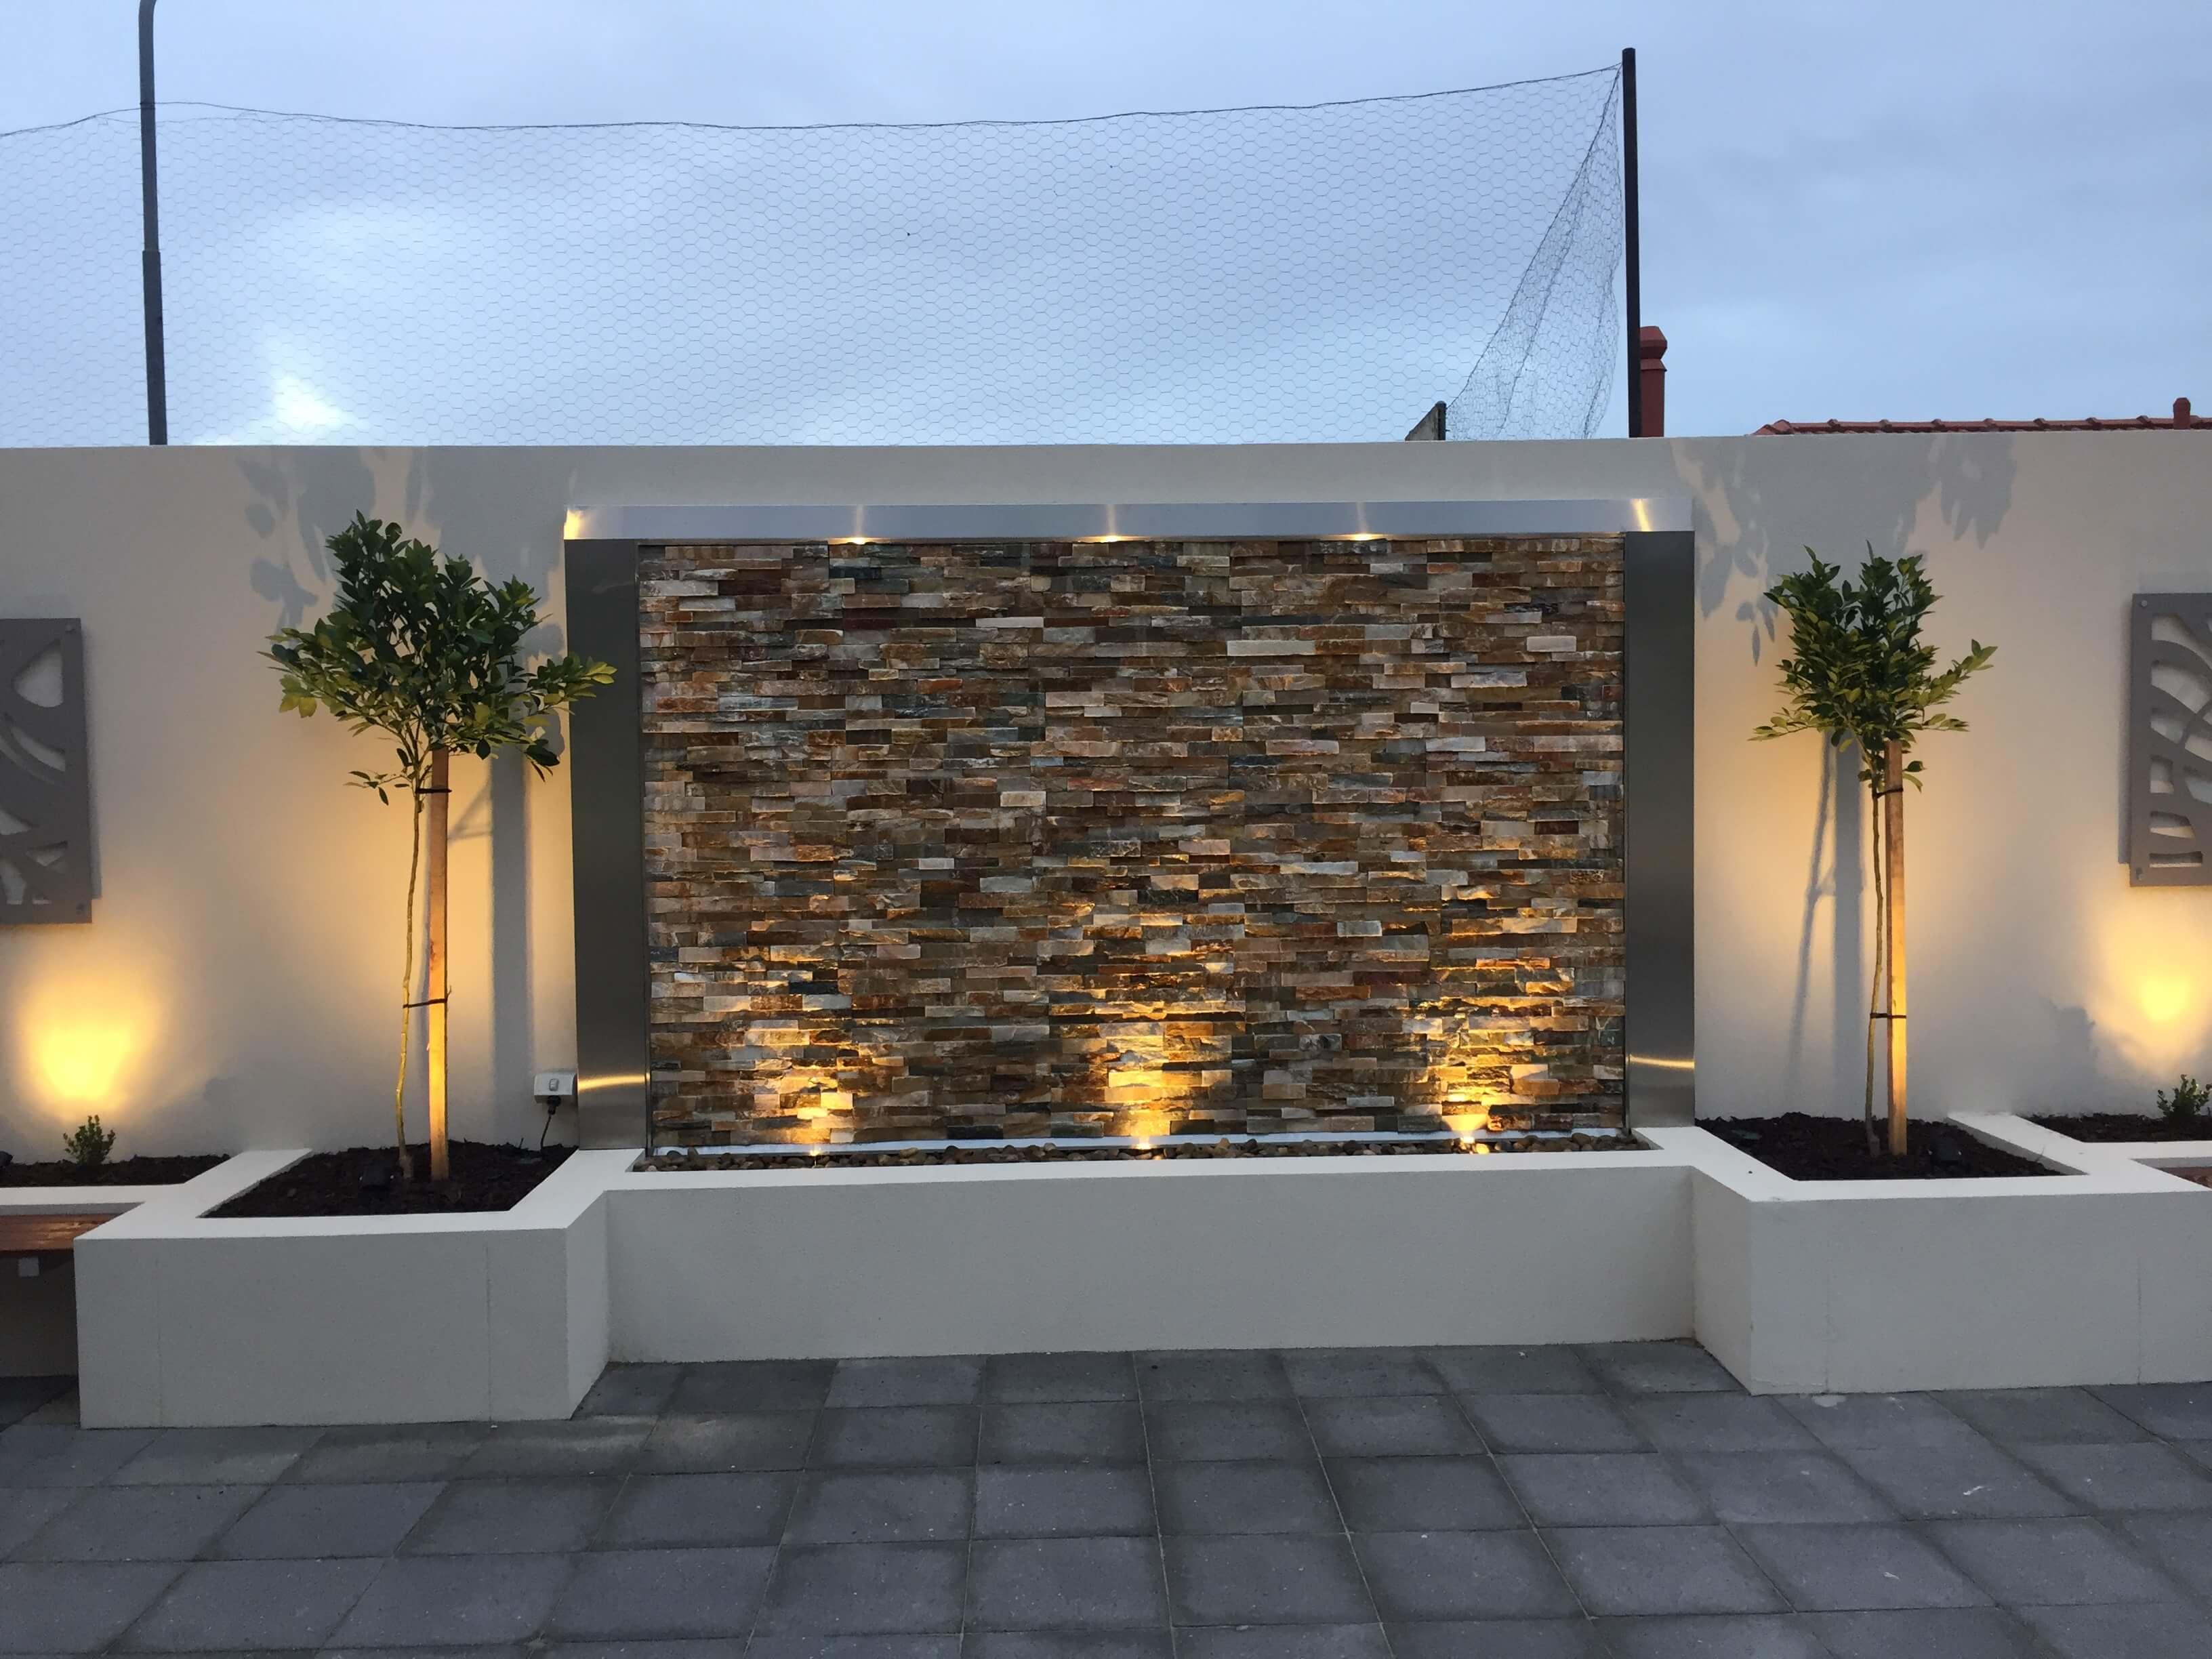 Blakeview - Water & light feature incorporated in our landscaping design